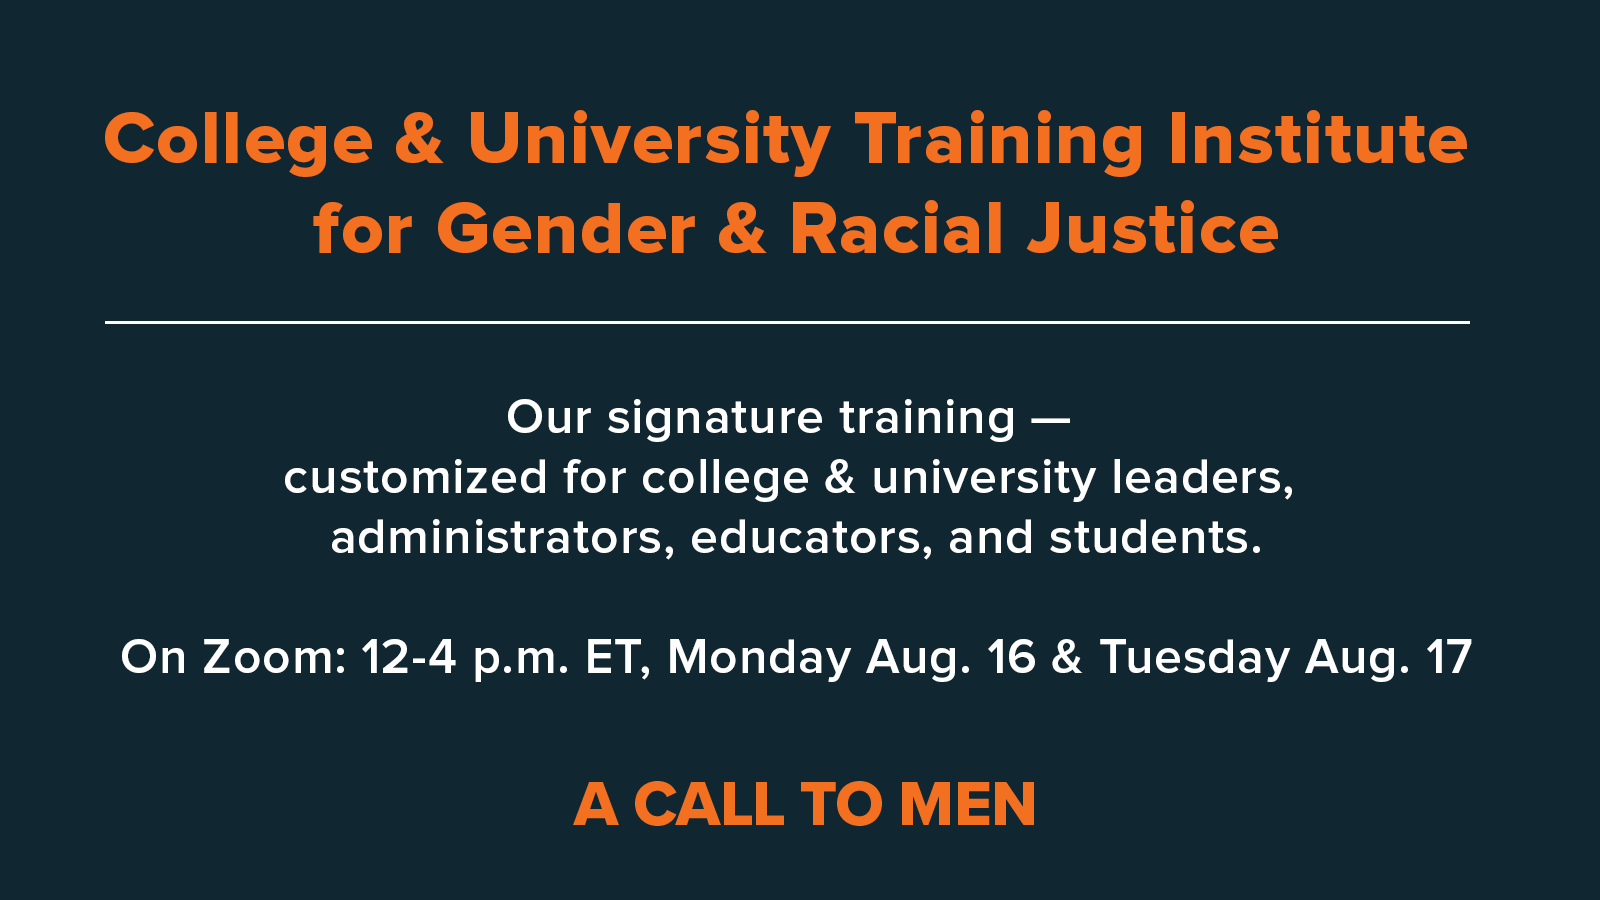 College & University Training Institute For Gender and Racial Justice